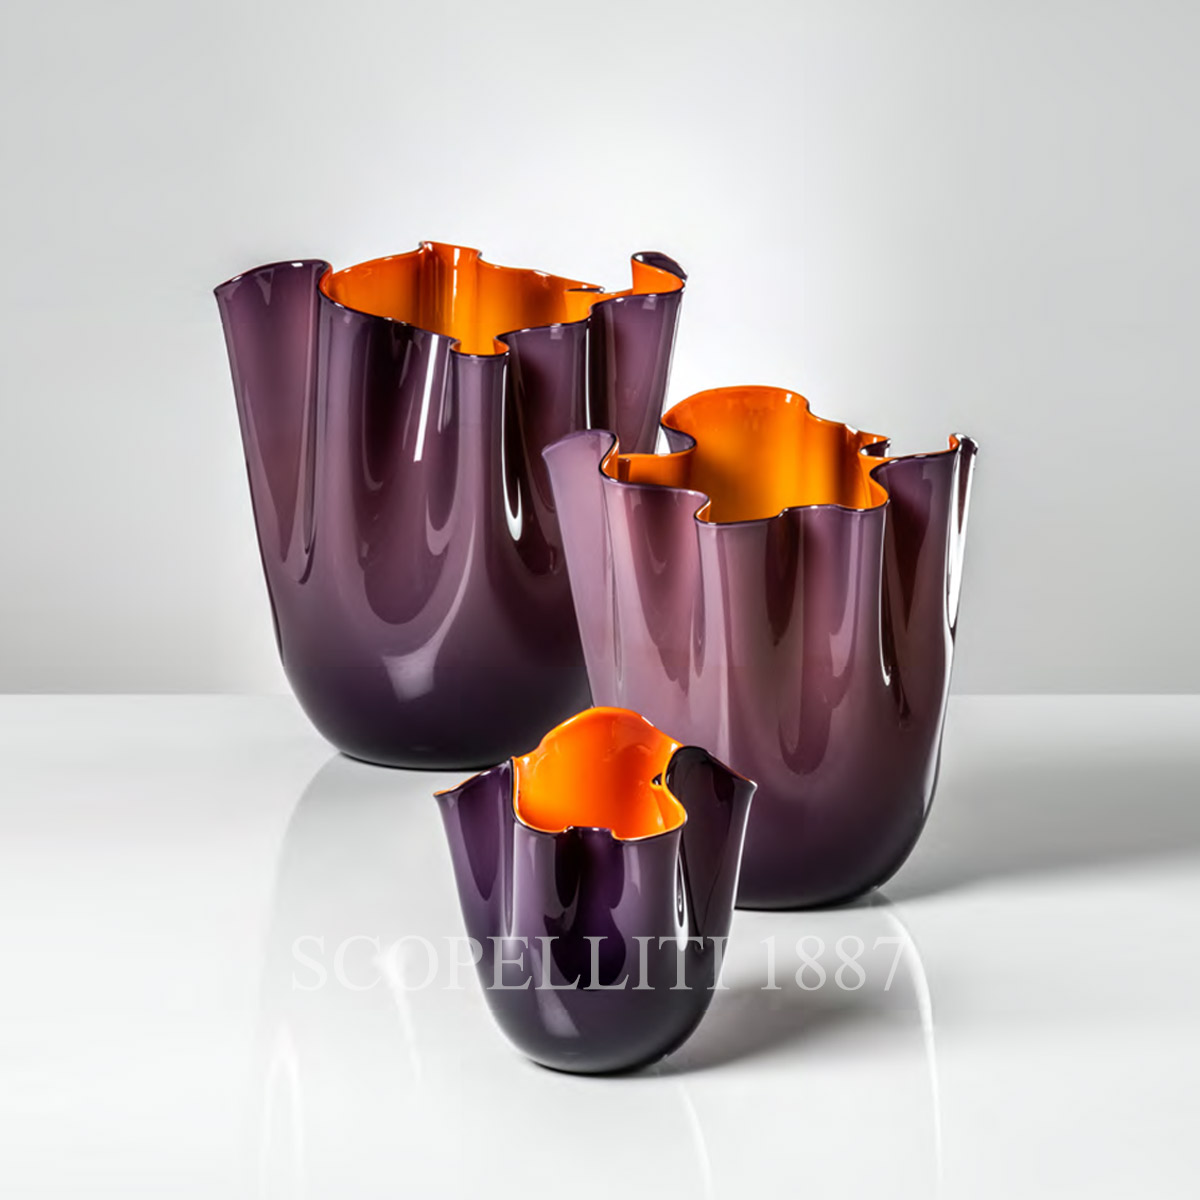 fazzoletto venini murano glass new vases indigo orange